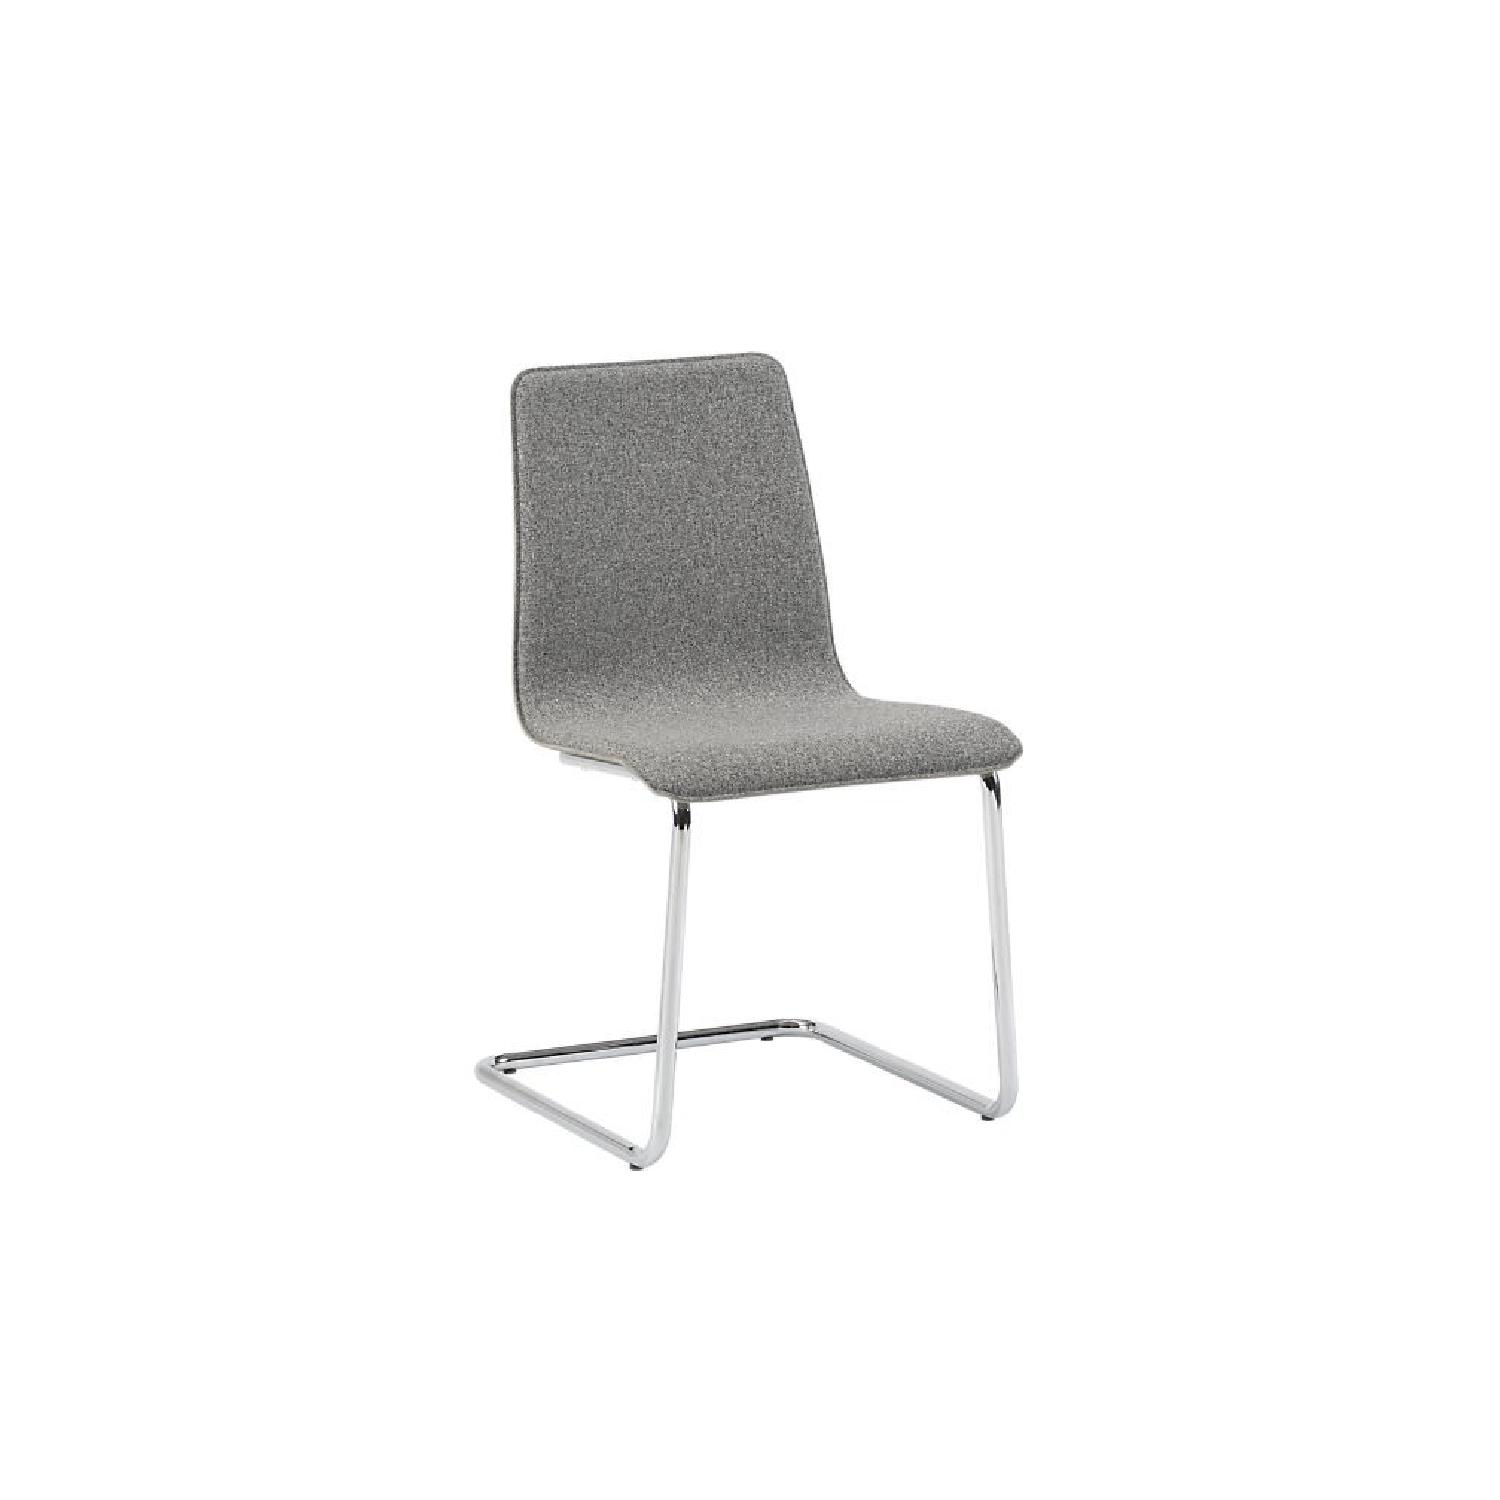 CB2 Pony Grey Tweed Dining Chairs ...